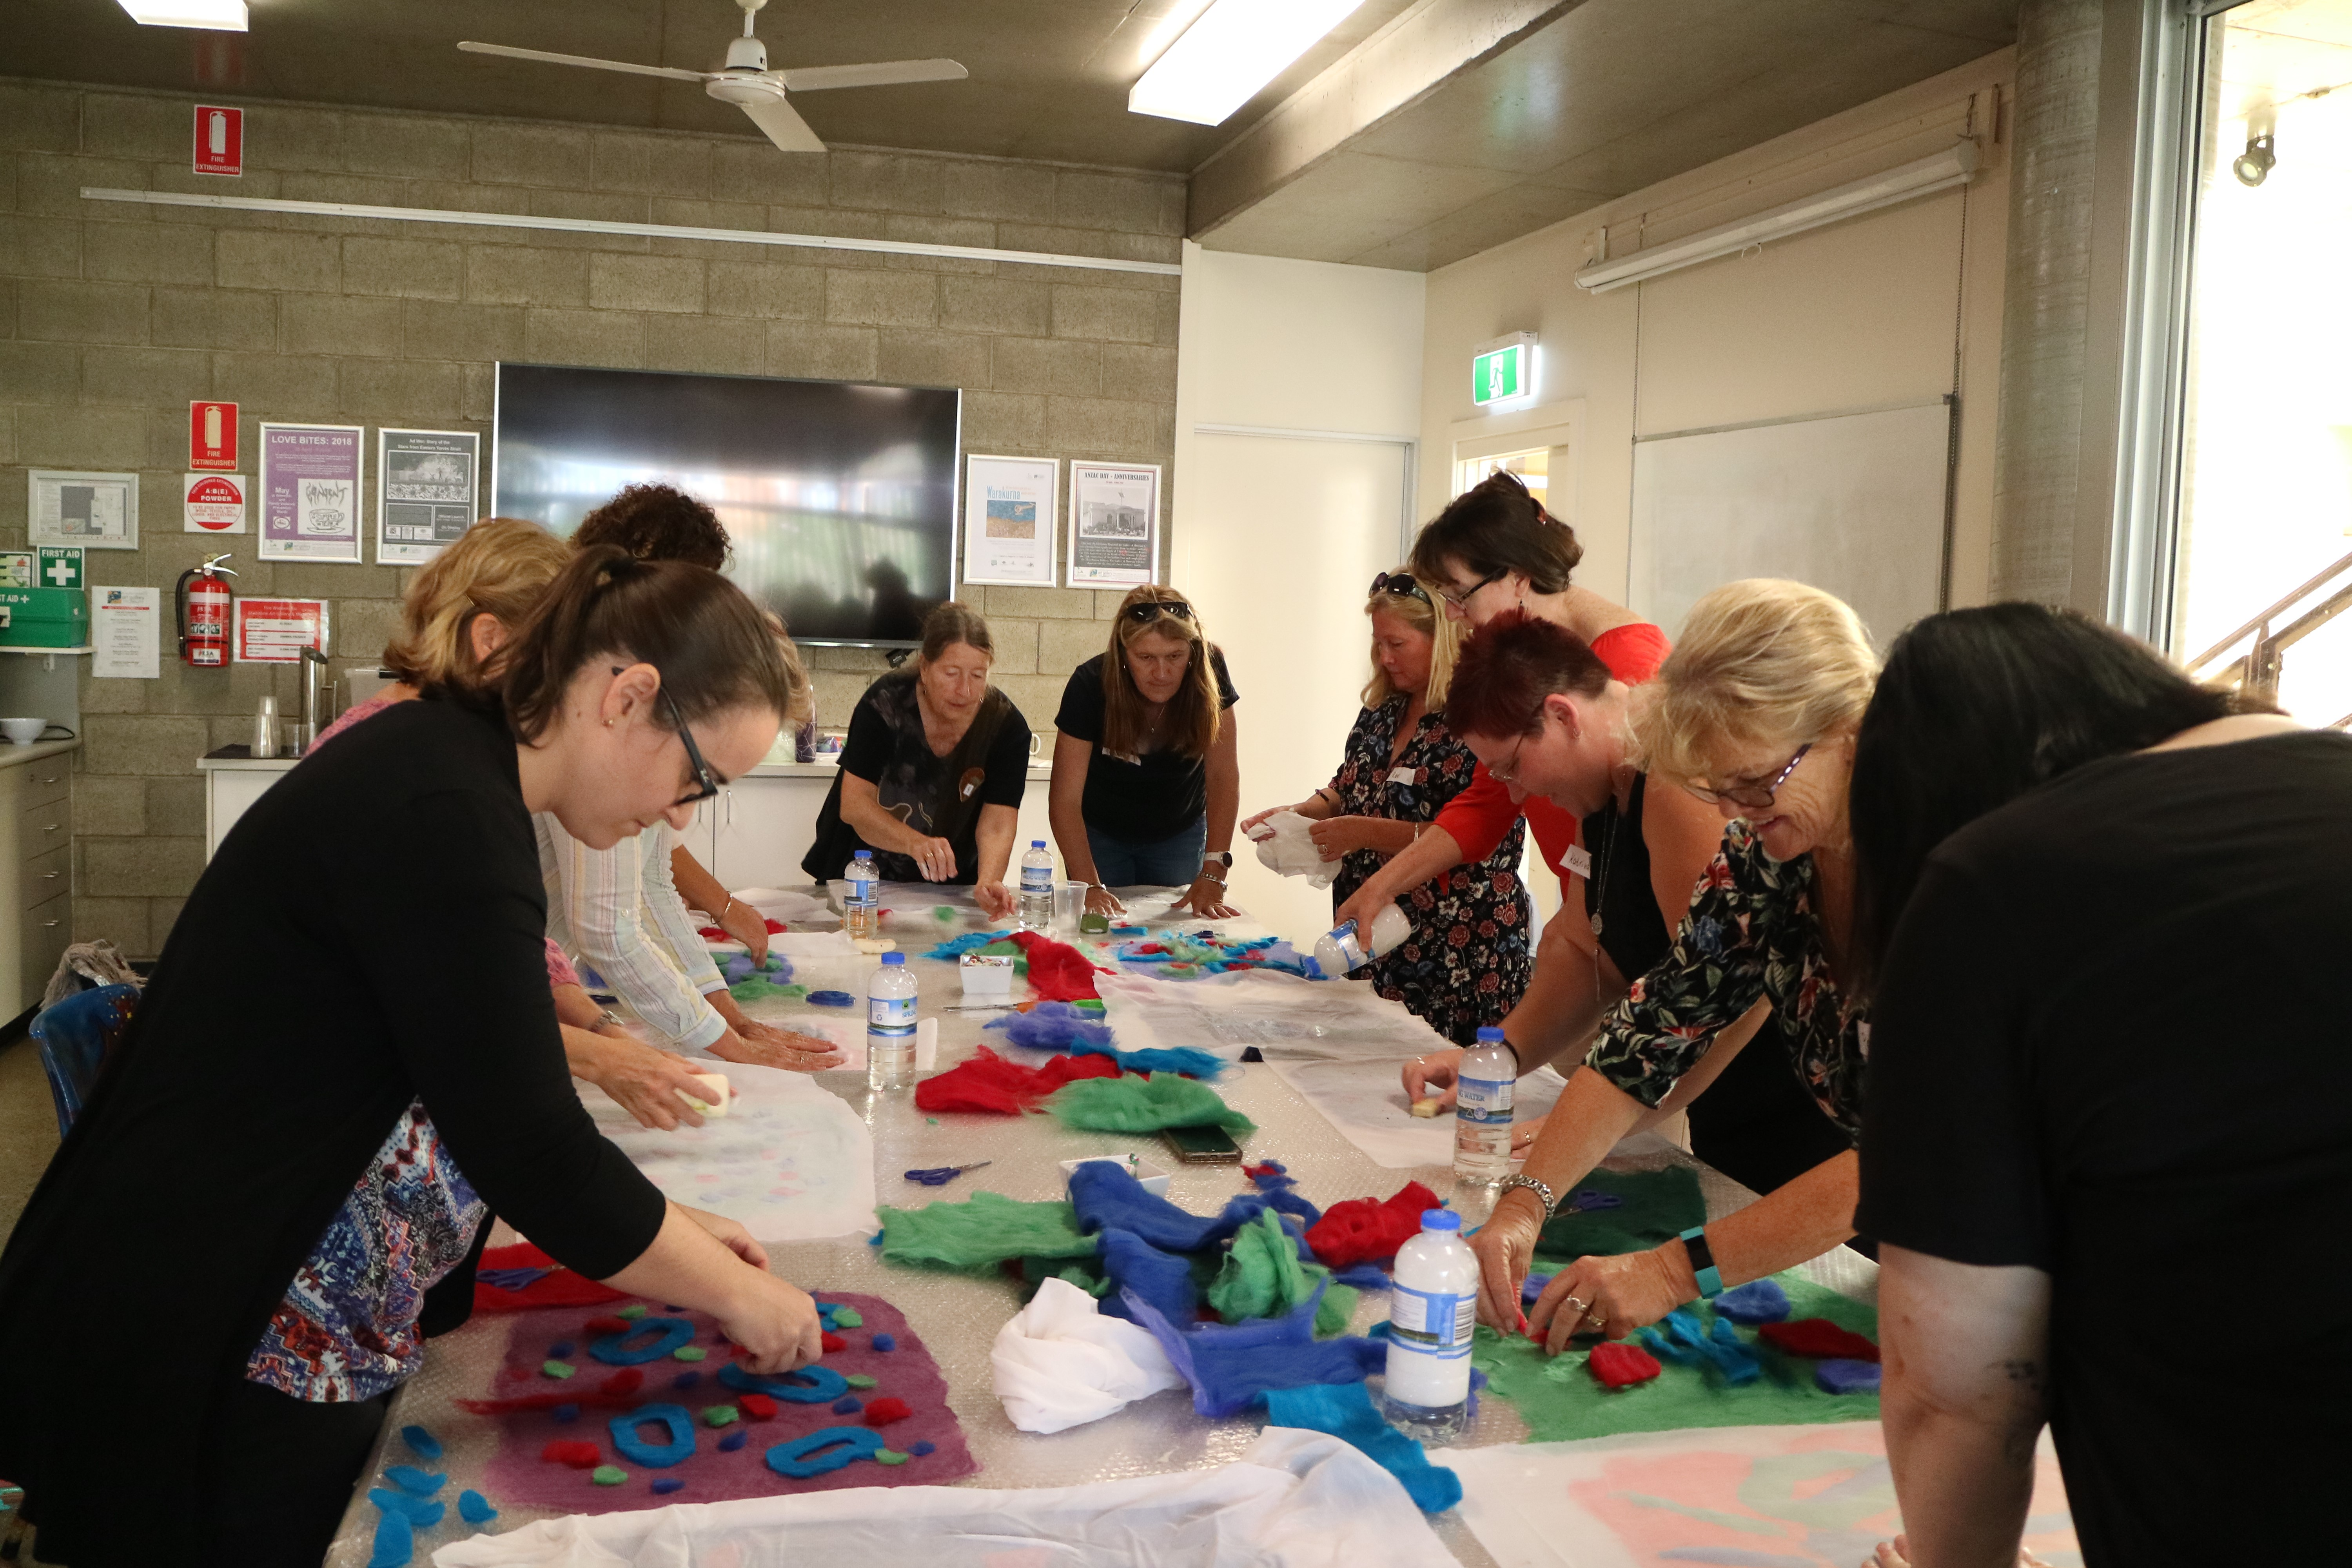 An Introduction to Working with Textiles with Lidia Godjin, Saturday 26 May 2018, Photographer: E. Korotkaia.